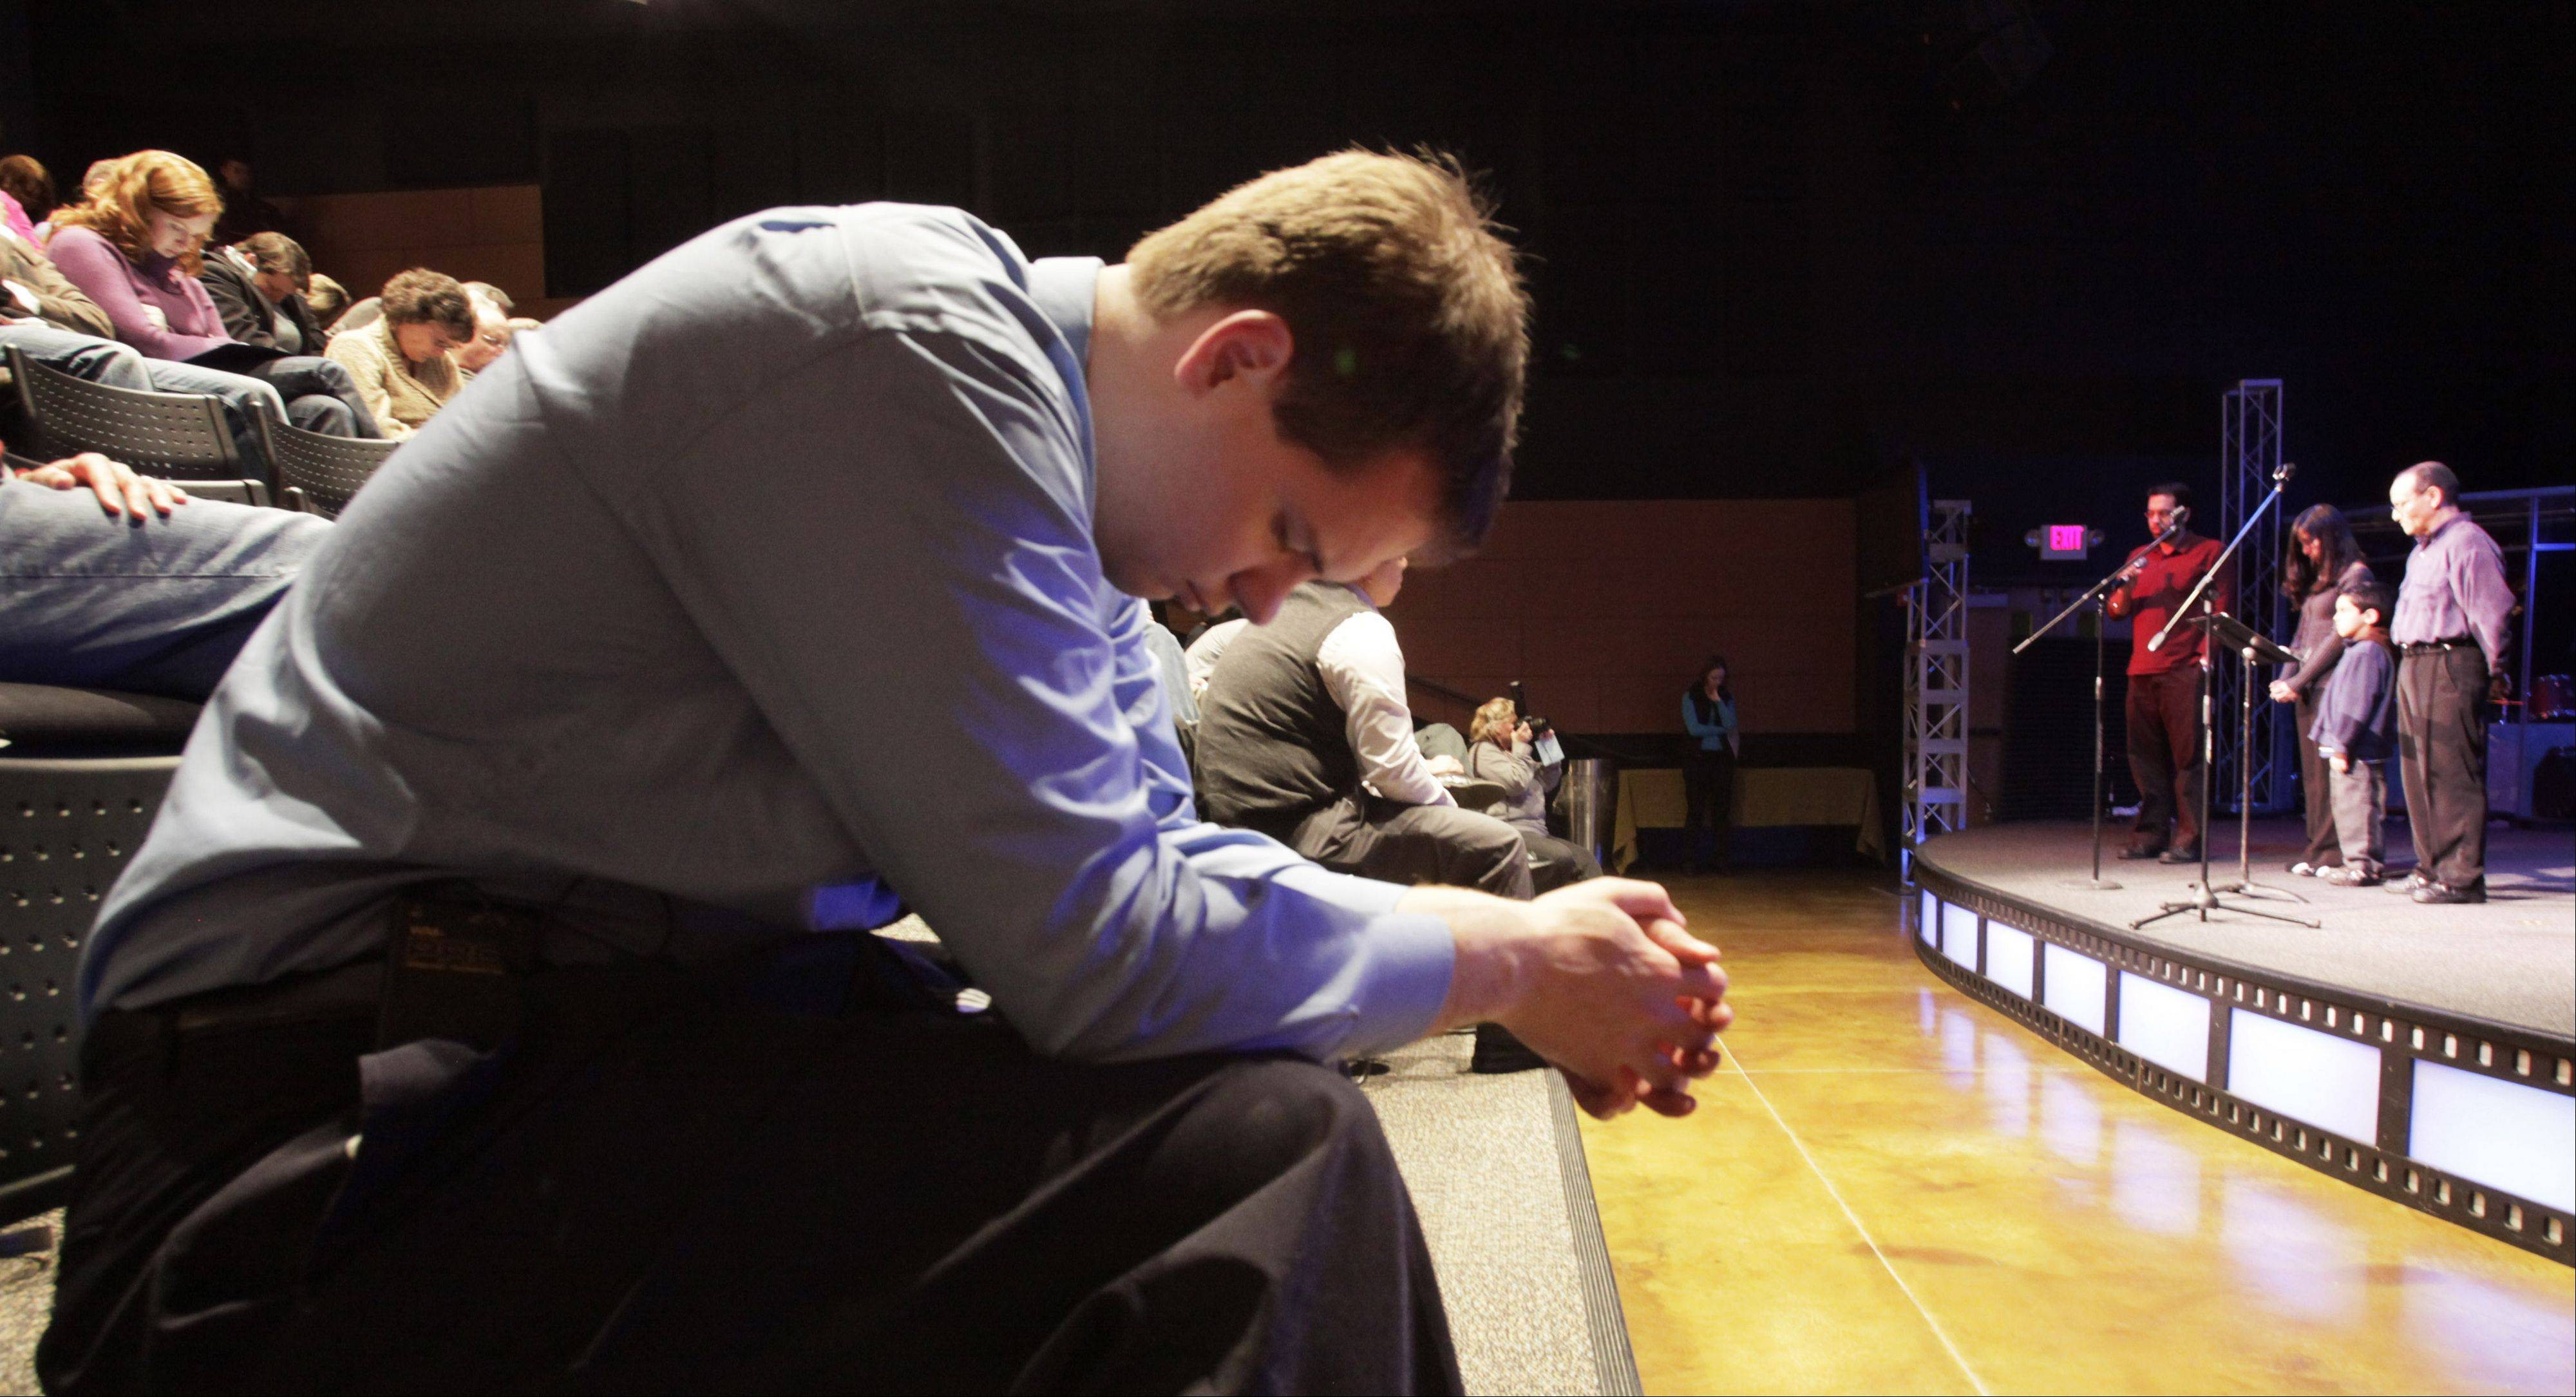 Matthew Soerens of Glen Ellyn prays in February 2010 after making a presentation in Naperville before church pastors and laymen on the topic of biblical perspectives on immigration.